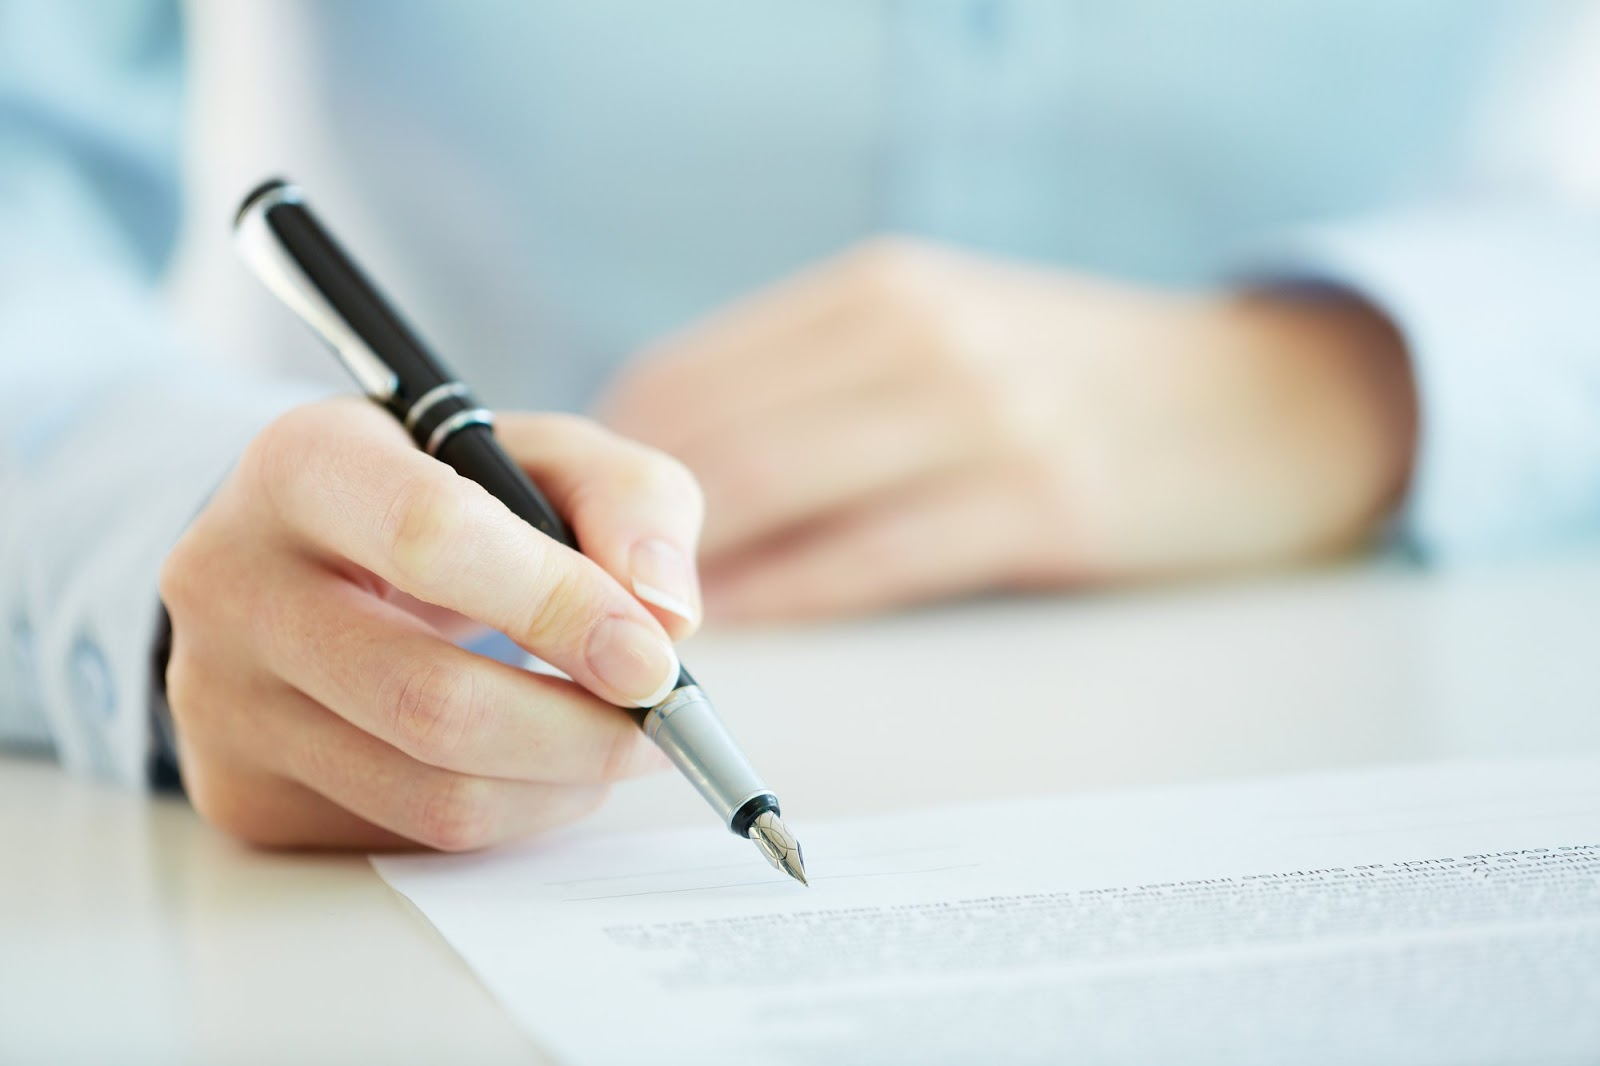 A hand holding a pen on typed document